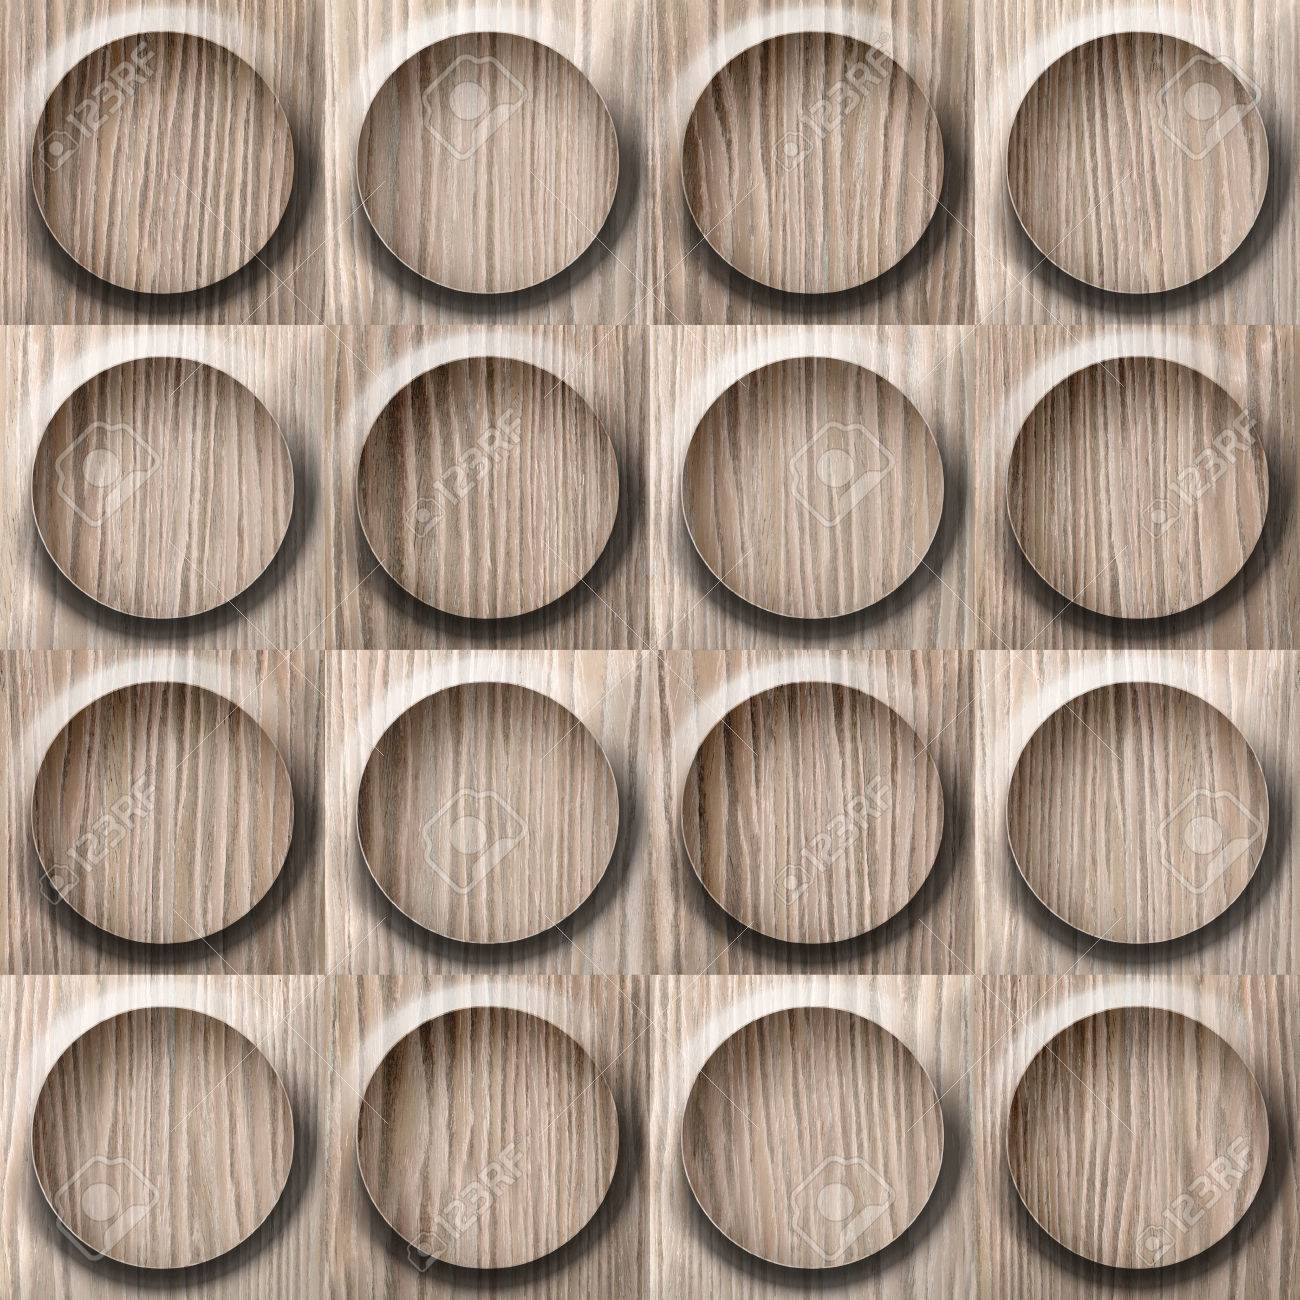 Wooden rounded abstract blocks stacked for seamless background - Blasted Oak Groove wood texture - 41307417